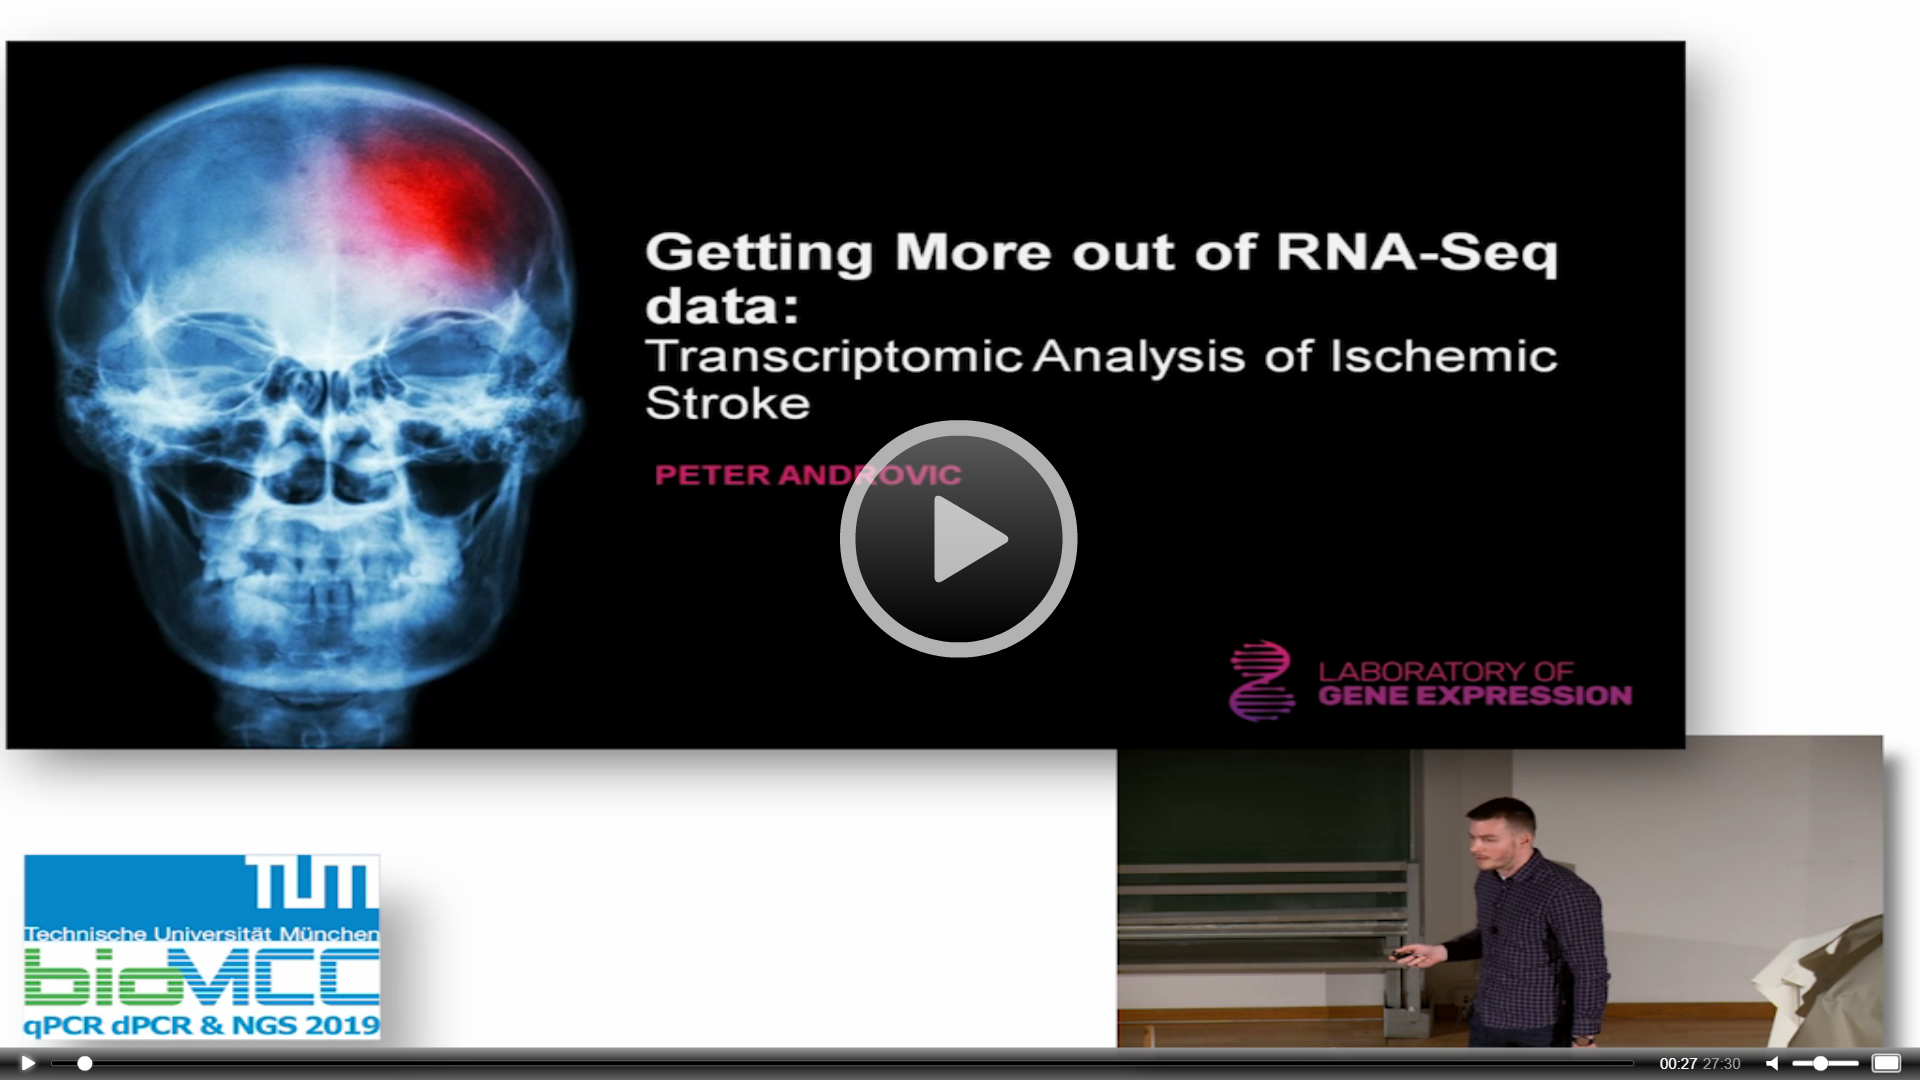 Getting More out of RNA-Seq Data: Transcriptomic Analysis of Ischemic Stroke